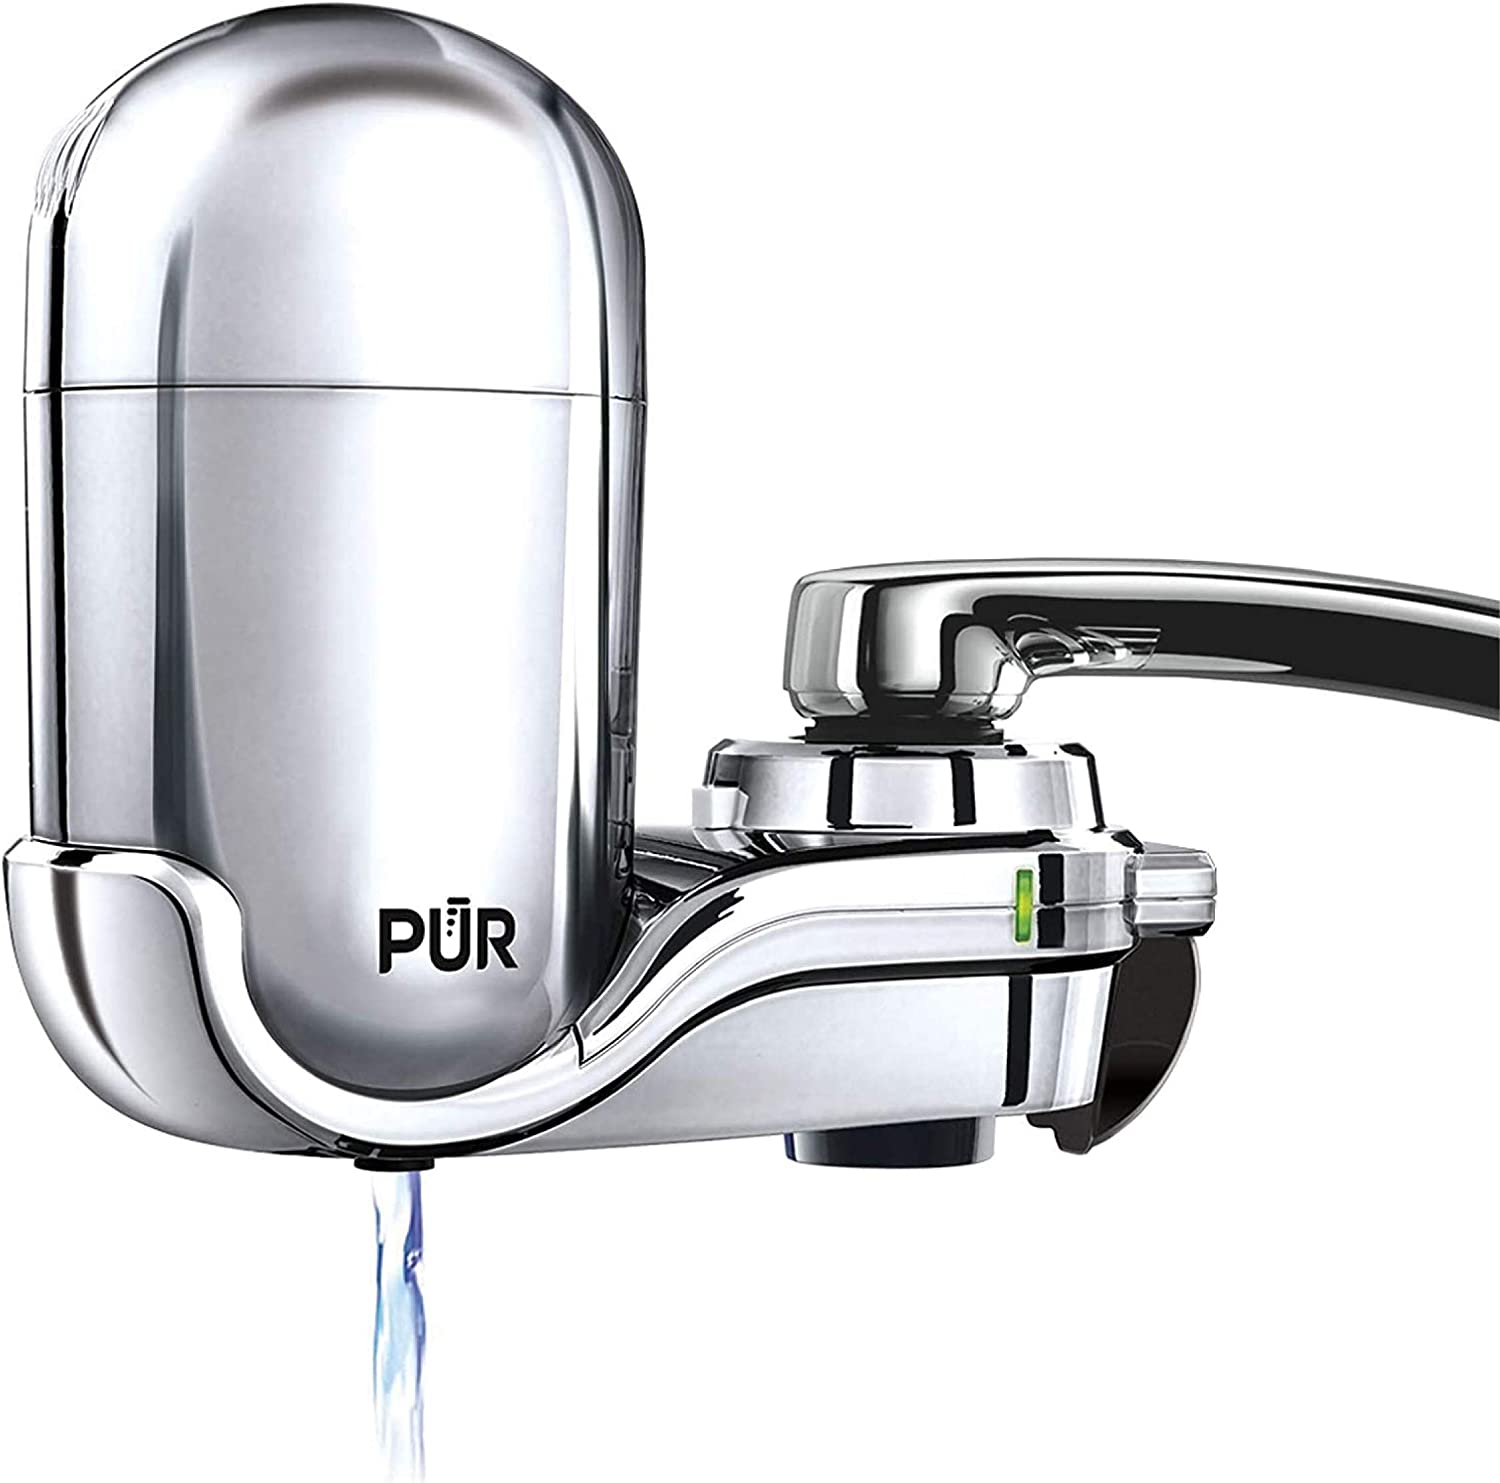 The Best faucet mount water filter - Our pick